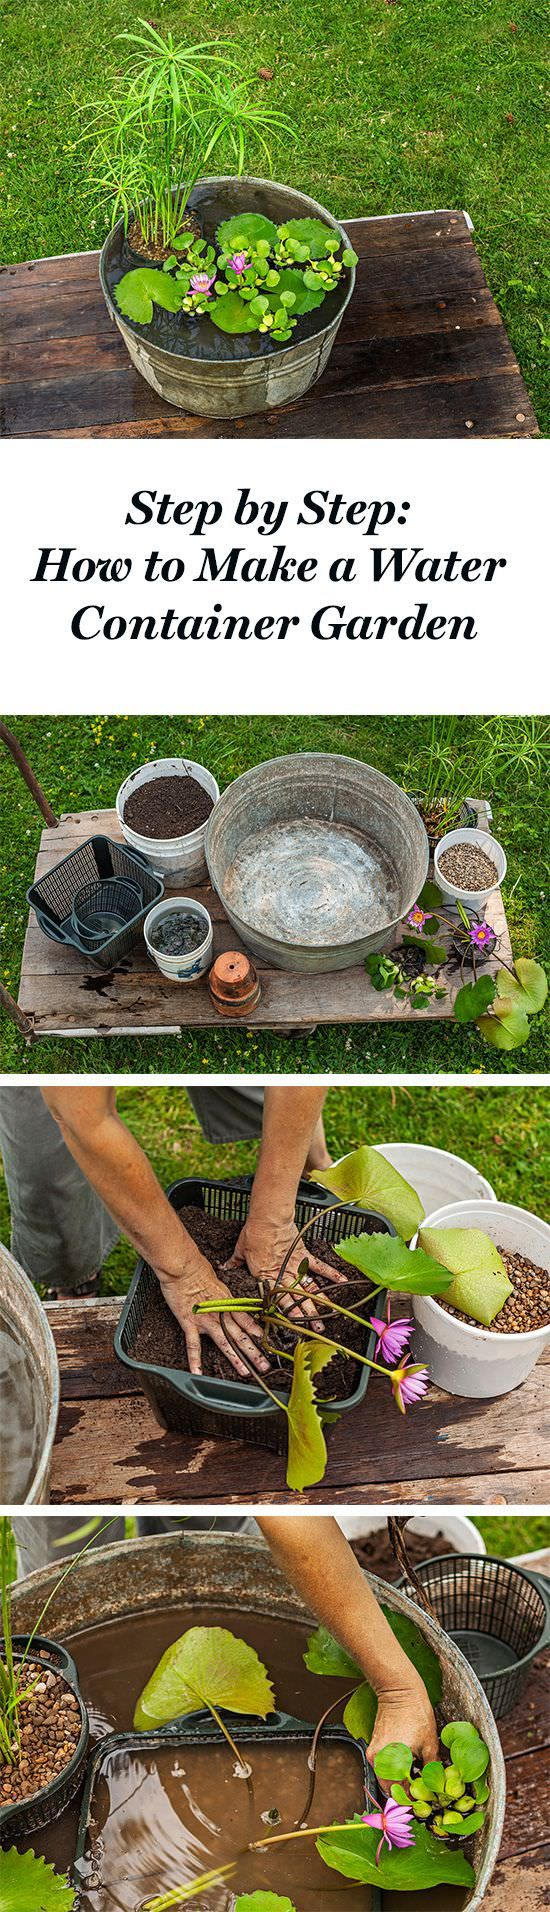 If you wish to create a water garden but don't have space then it's a brilliant idea to start it in a container. Making this container water garden is easy and all you need is to follow a few instructions!